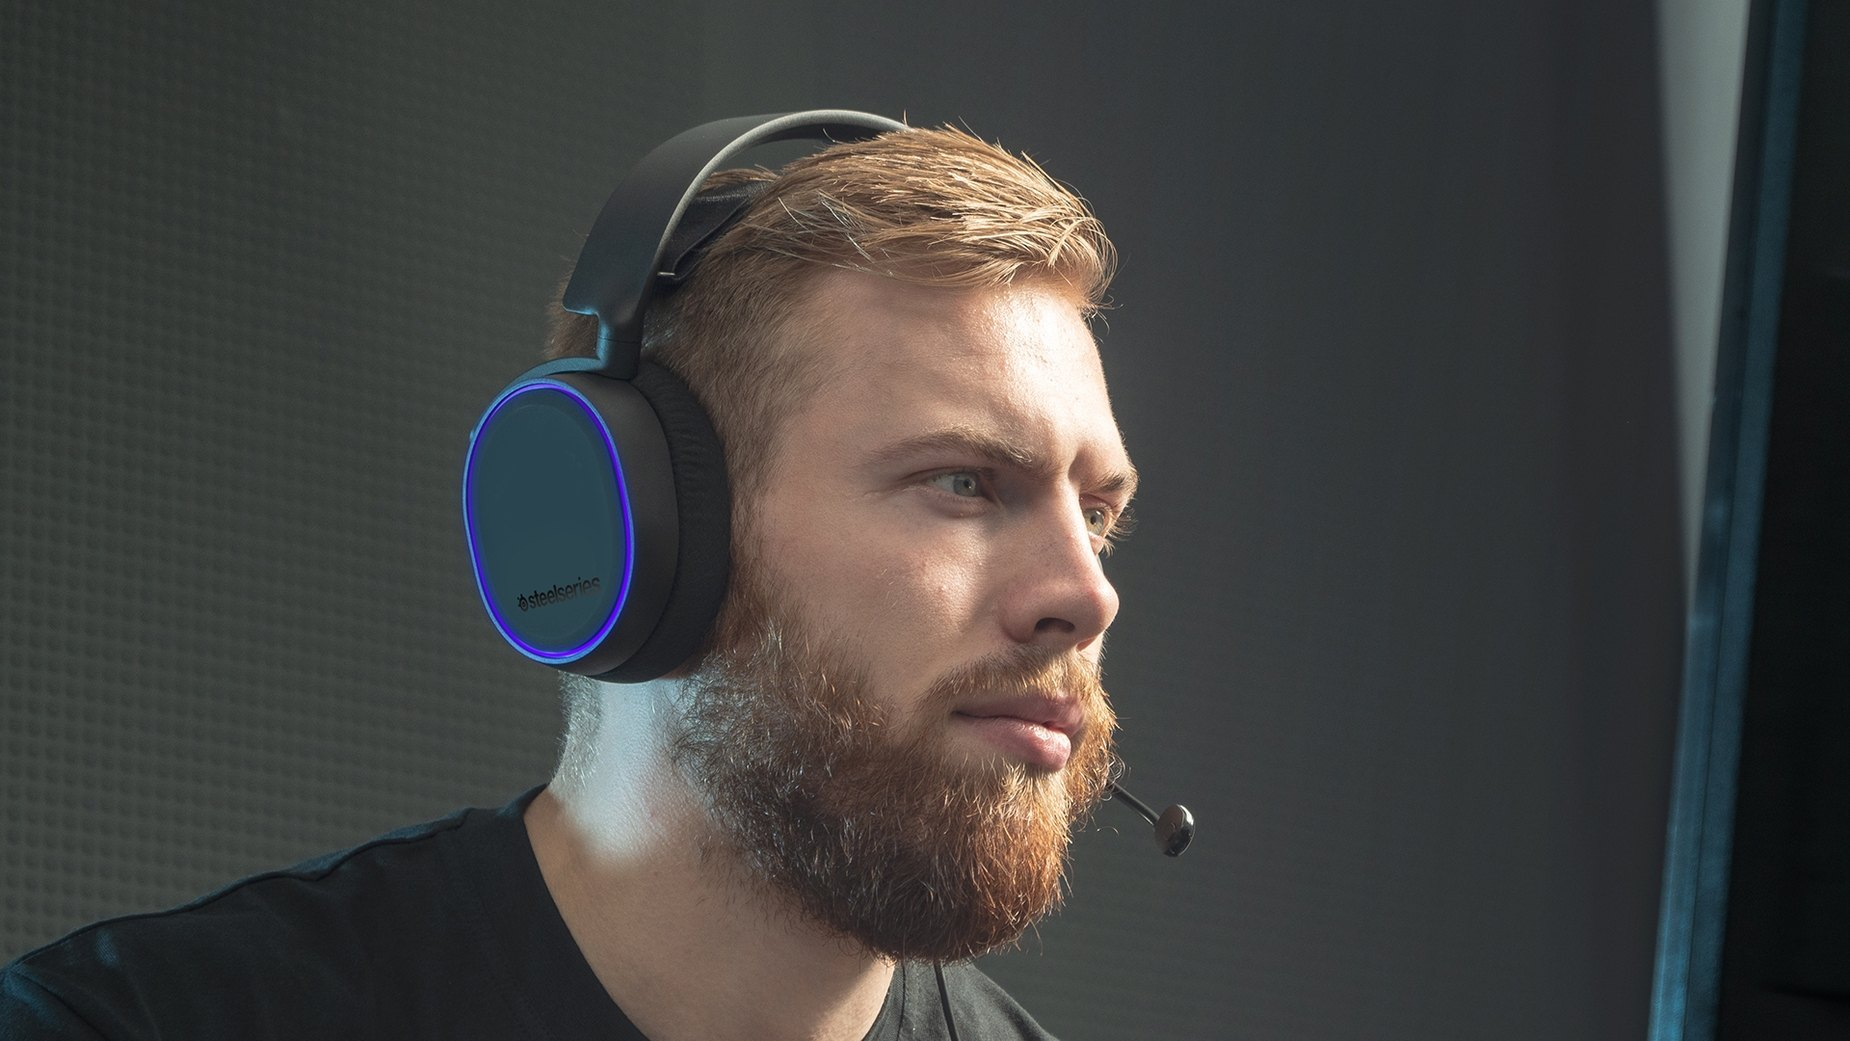 Bearded man wearing an Arctis 5 RGB gaming headset